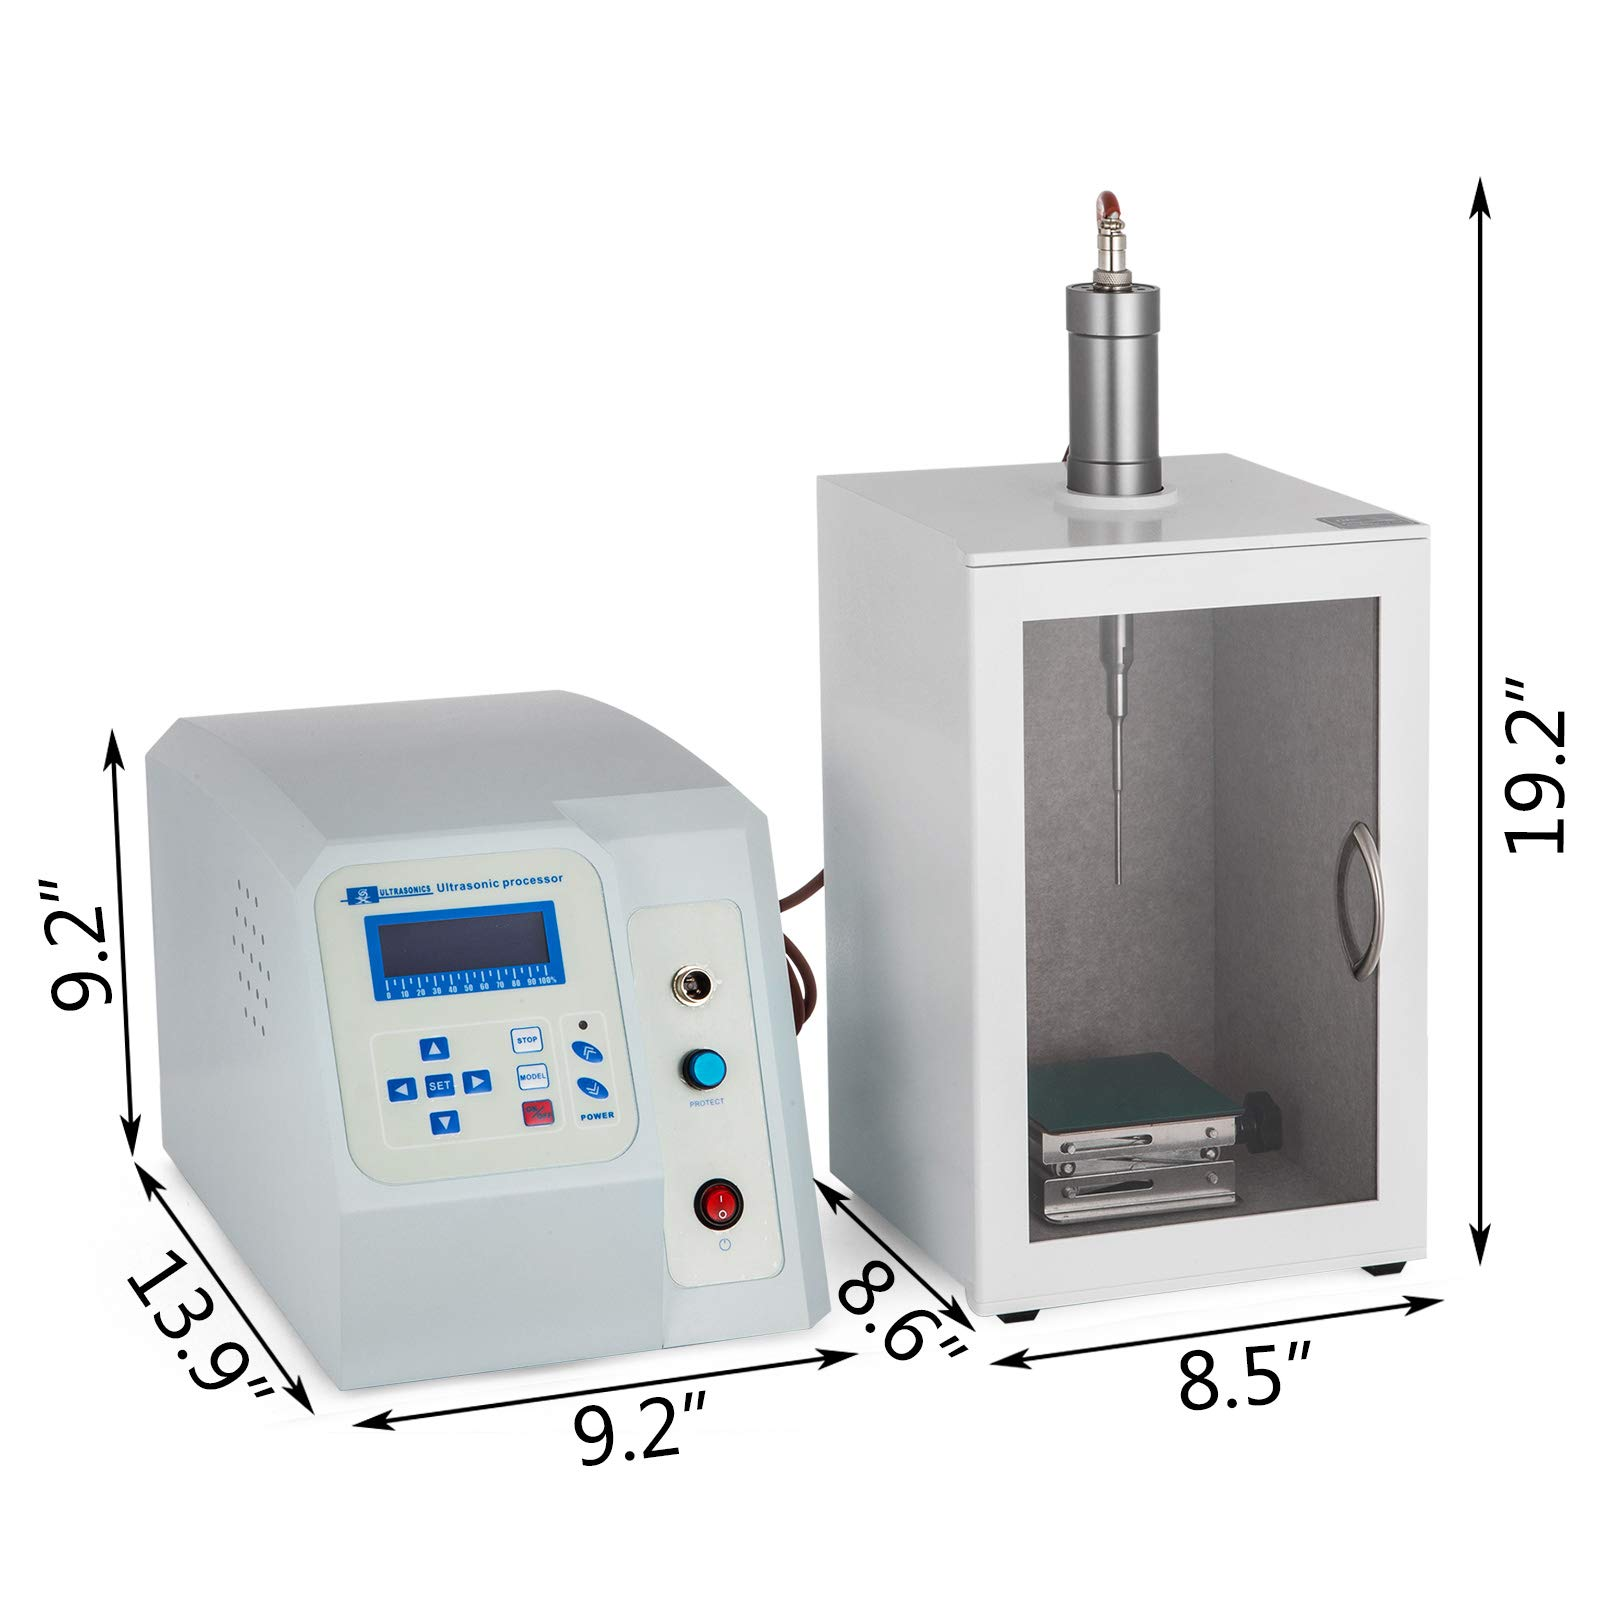 VEVOR Ultrasonic Homogenizer 2~100ML Lab Ultrasonic Sonicator Processor 20KHz Cell Disruptor Mixer by VEVOR (Image #2)